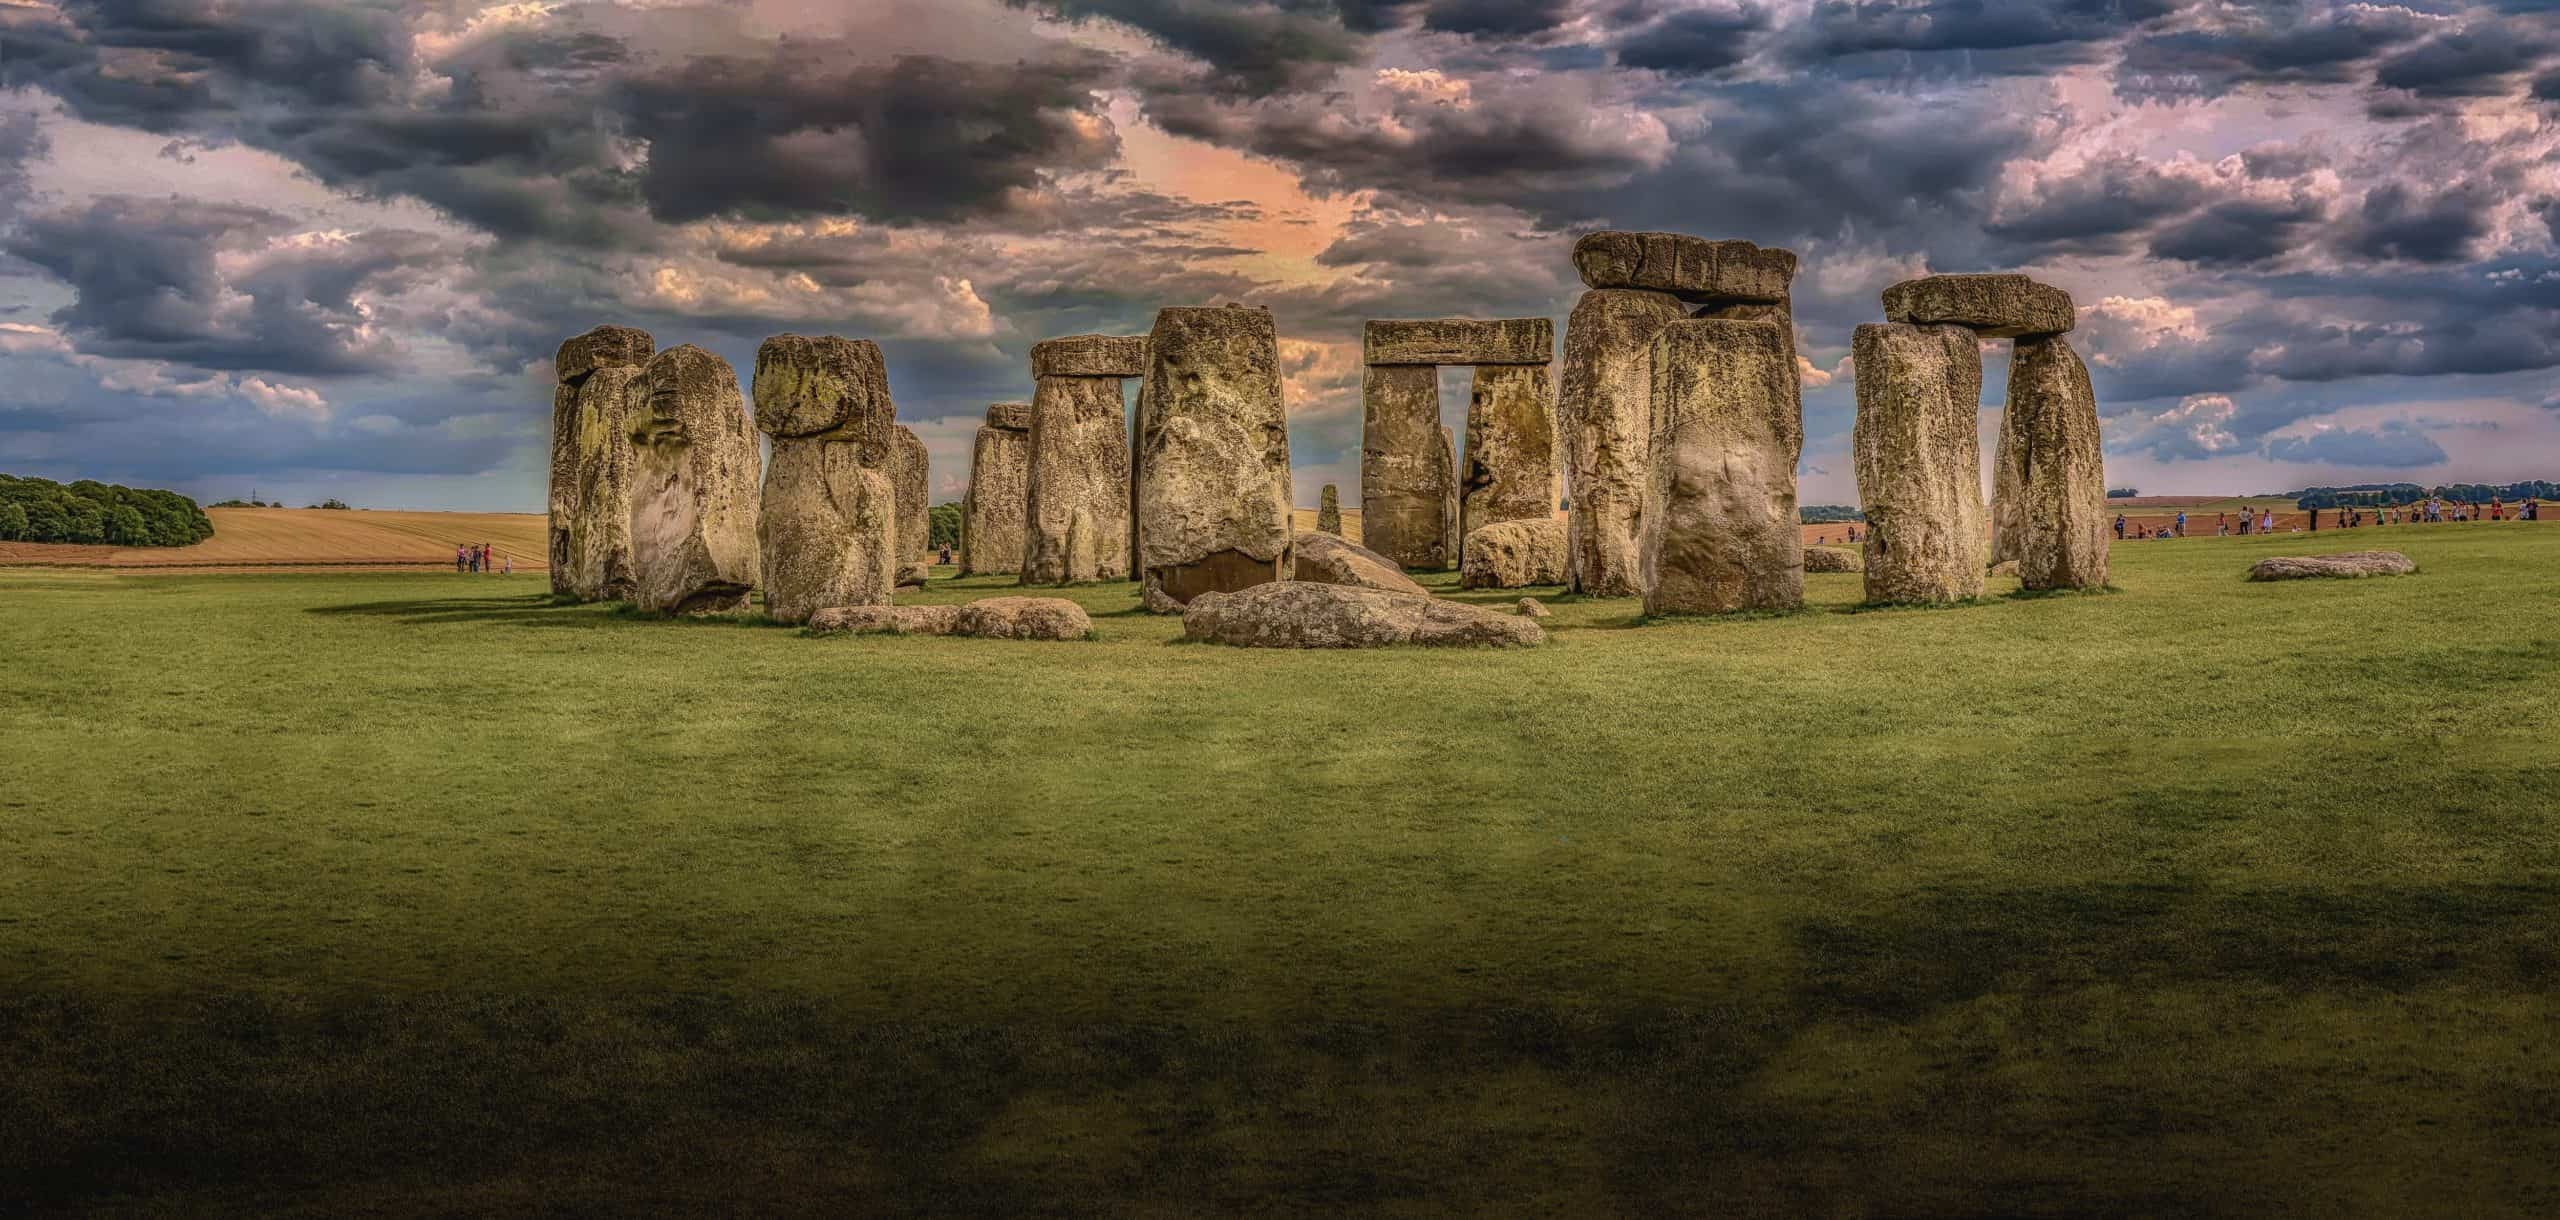 The Famous Monument- Stonehenge